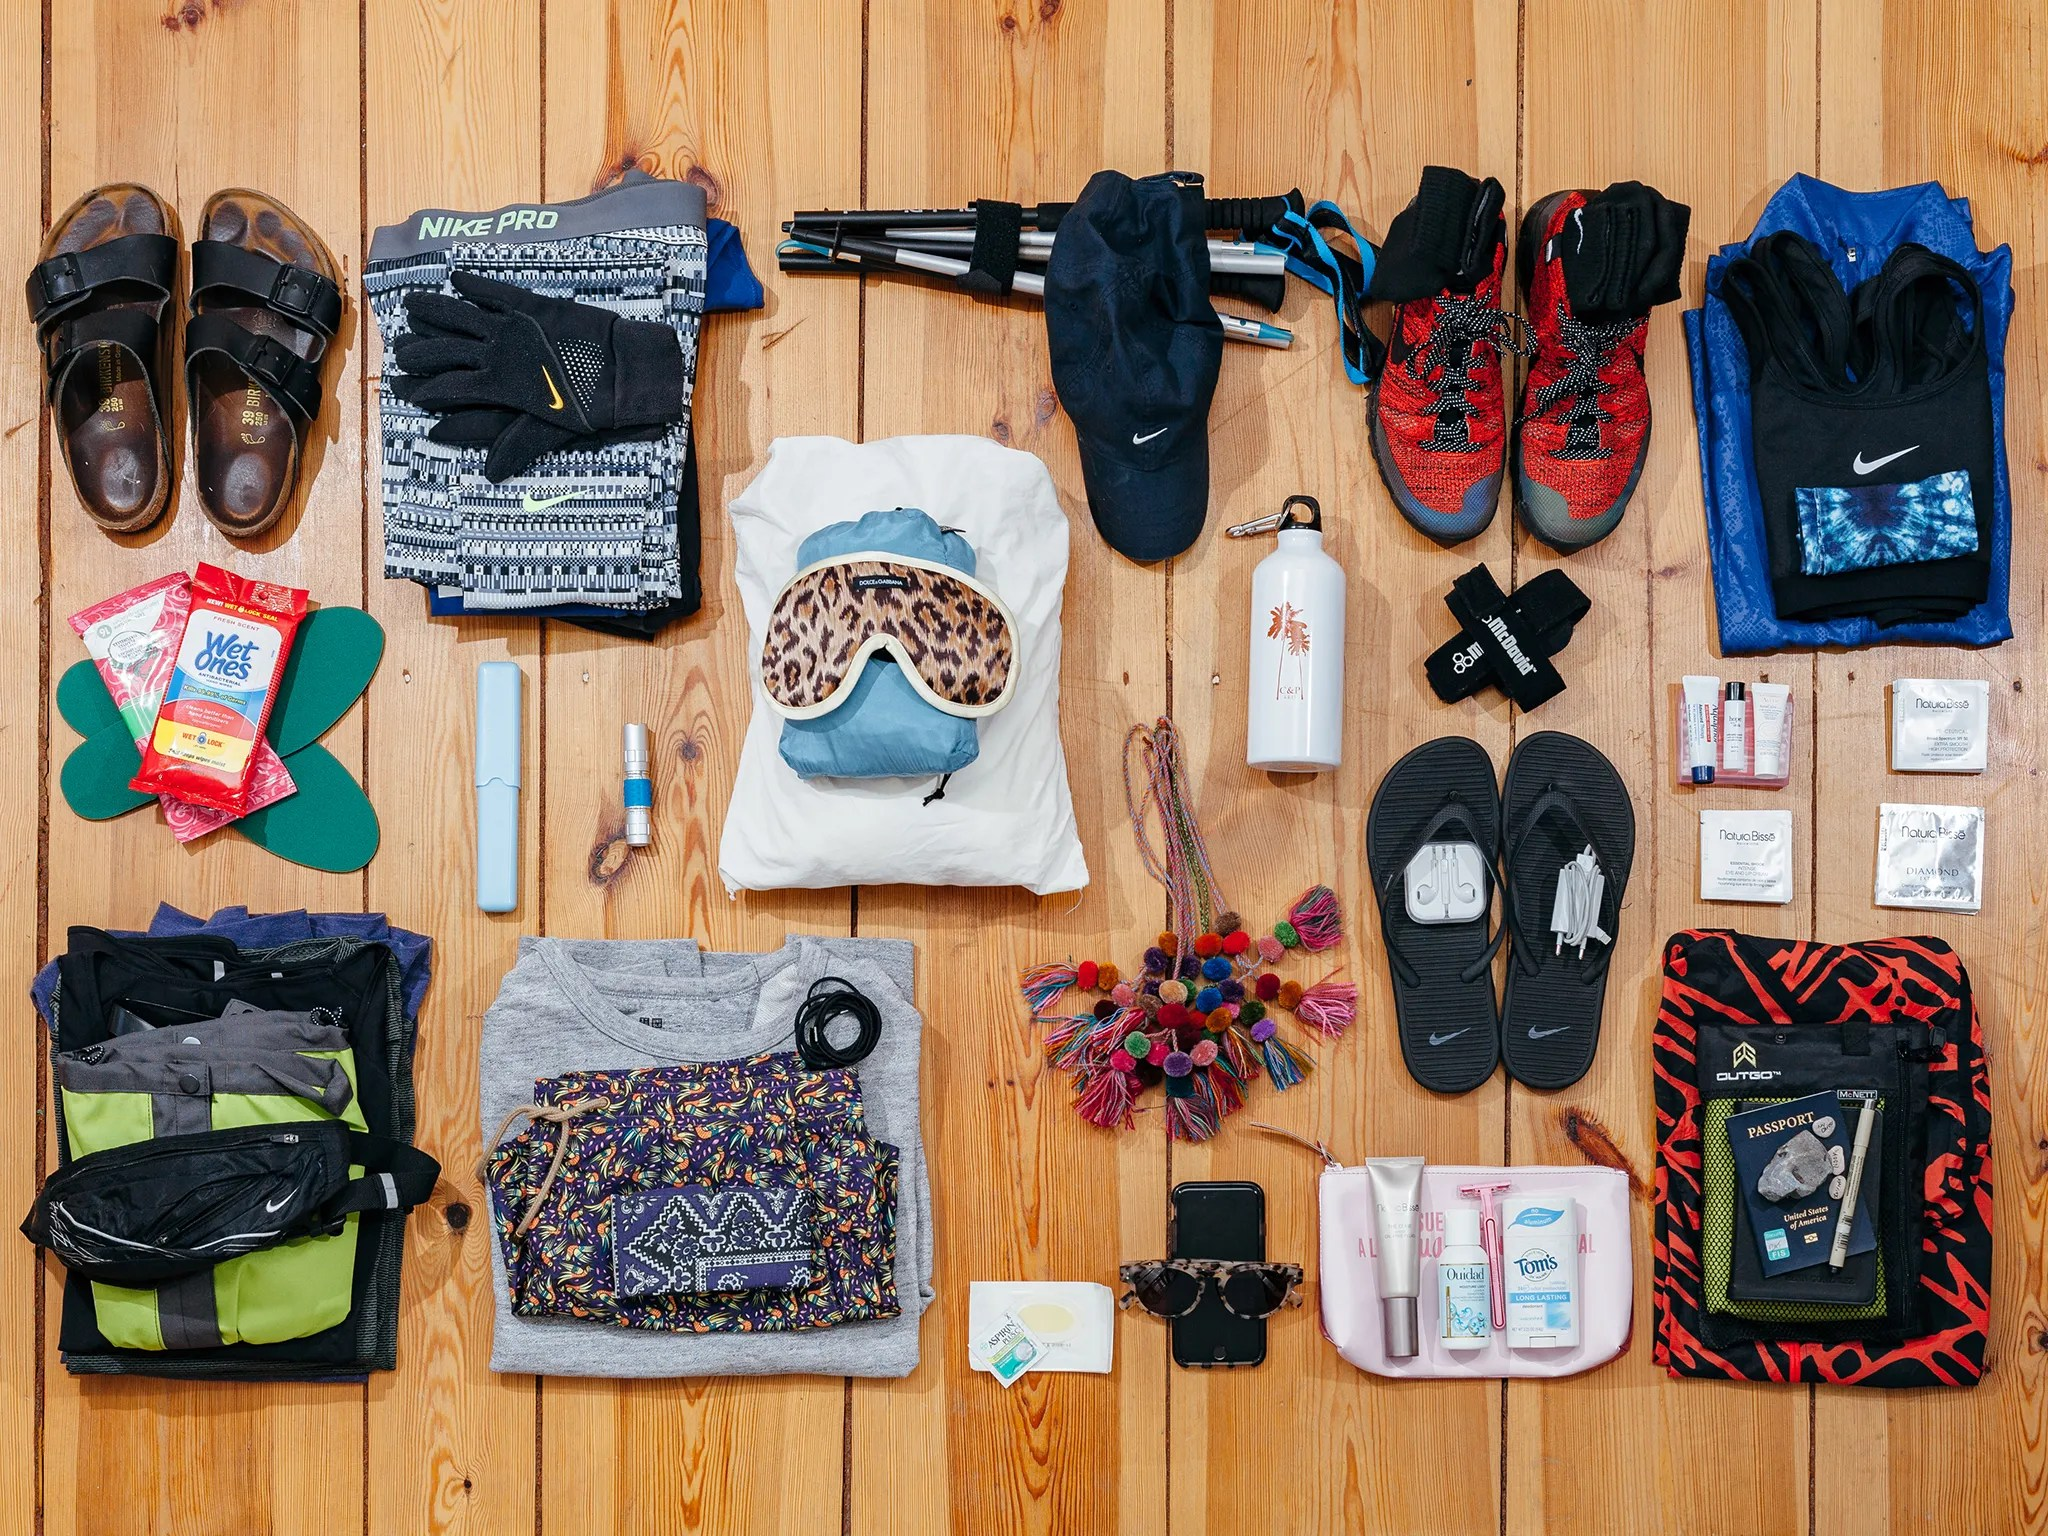 Camino Santiago Packing List What To Pack For The Camino De Santiago Condé Nast Traveler